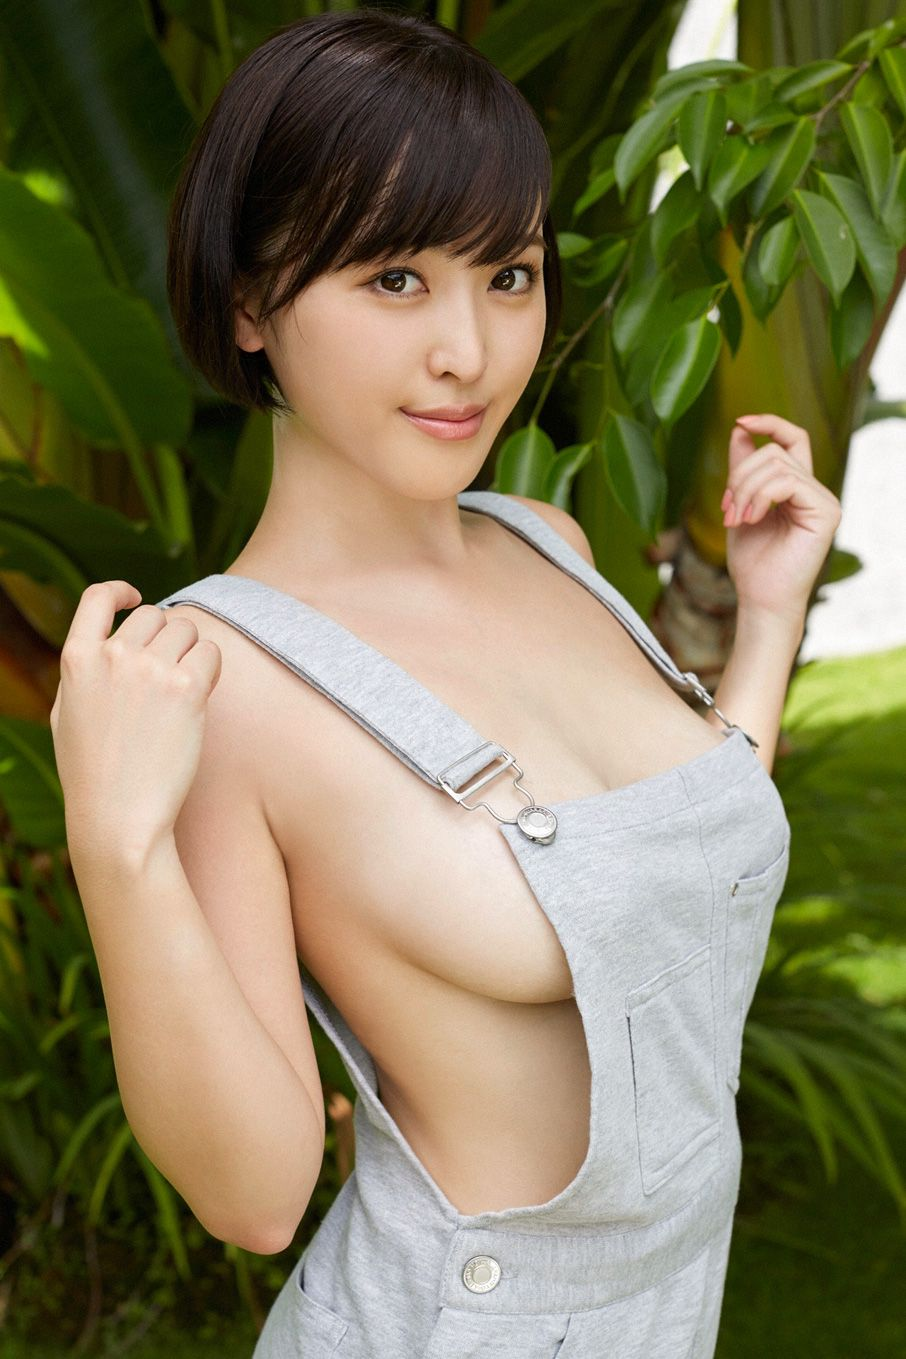 忍野さら Oshino Sara グラビア Pinterest Yellow Fever Sexy